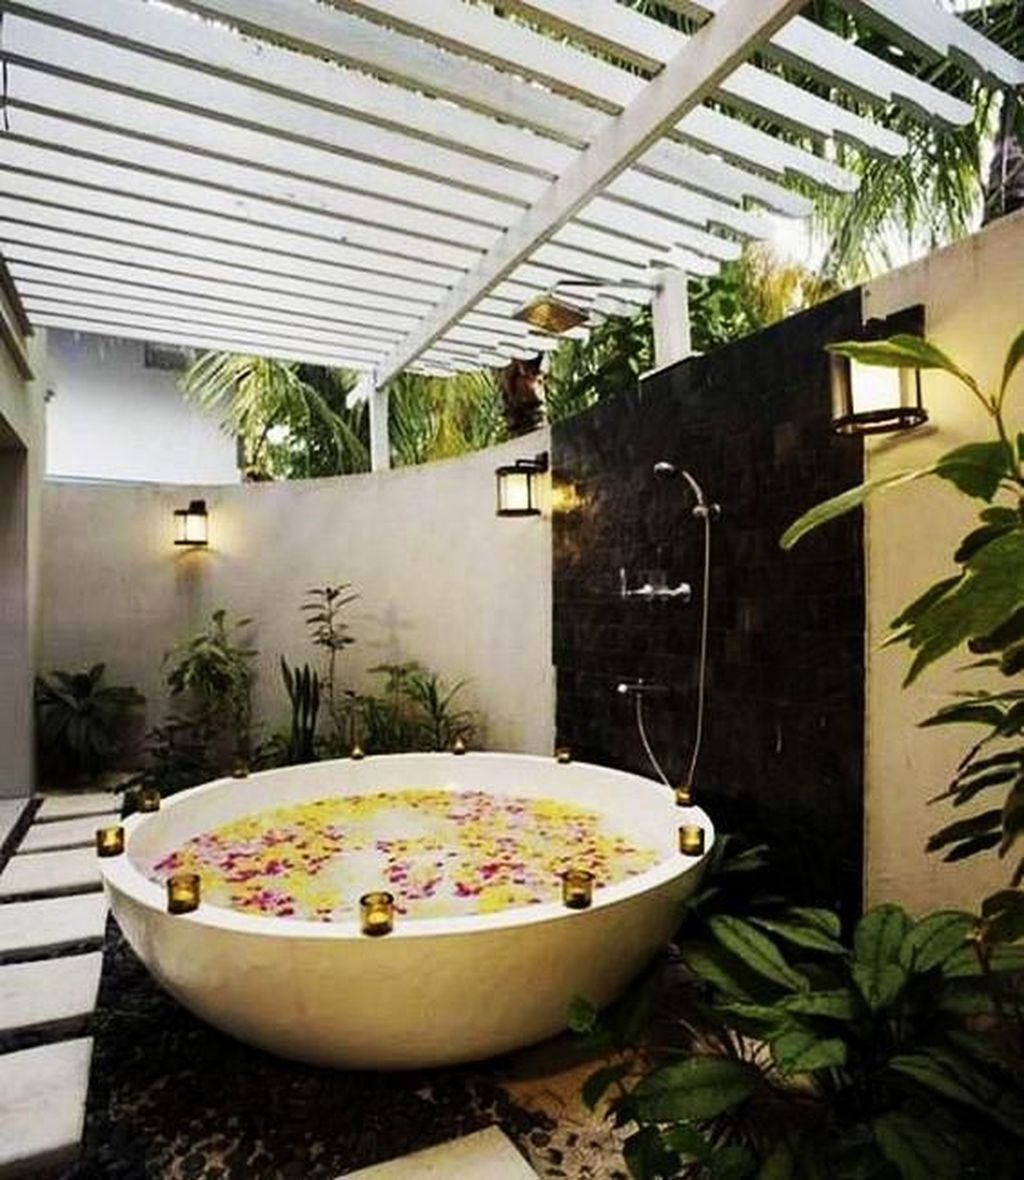 Stunning Outdoor Bathroom Design Ideas You Should Try 07 Magzhouse